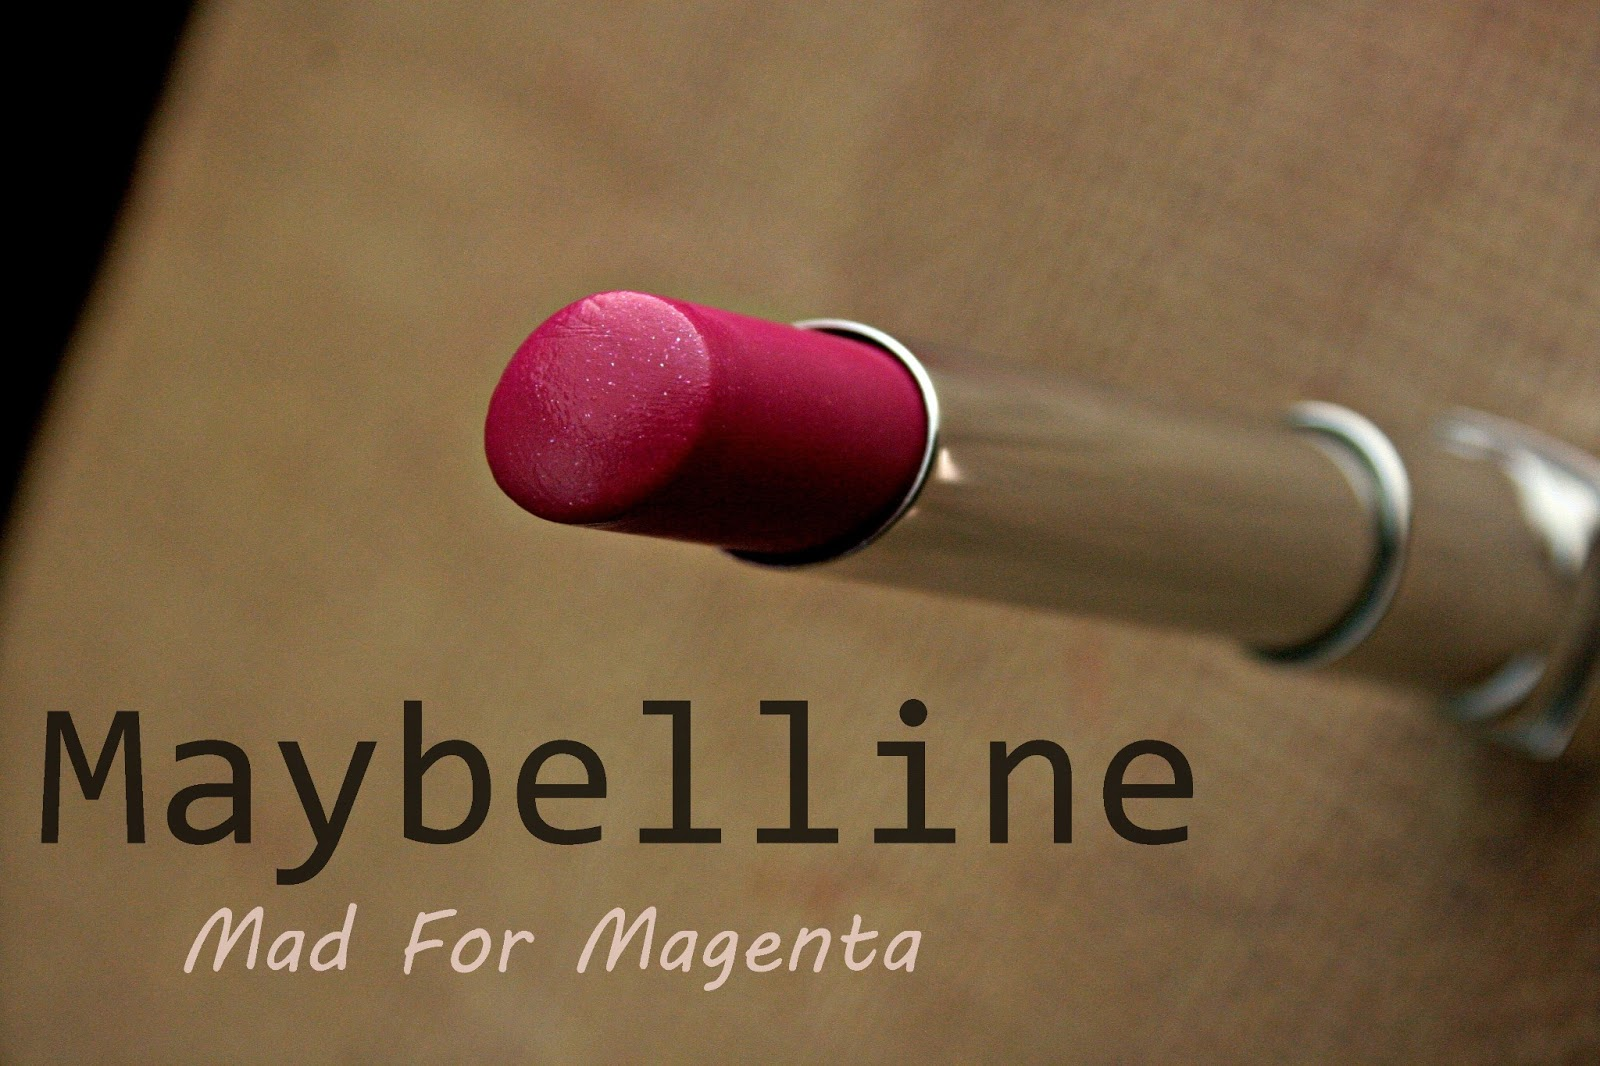 Maybelline Color Whisper Lipstick in Mad For Magenta